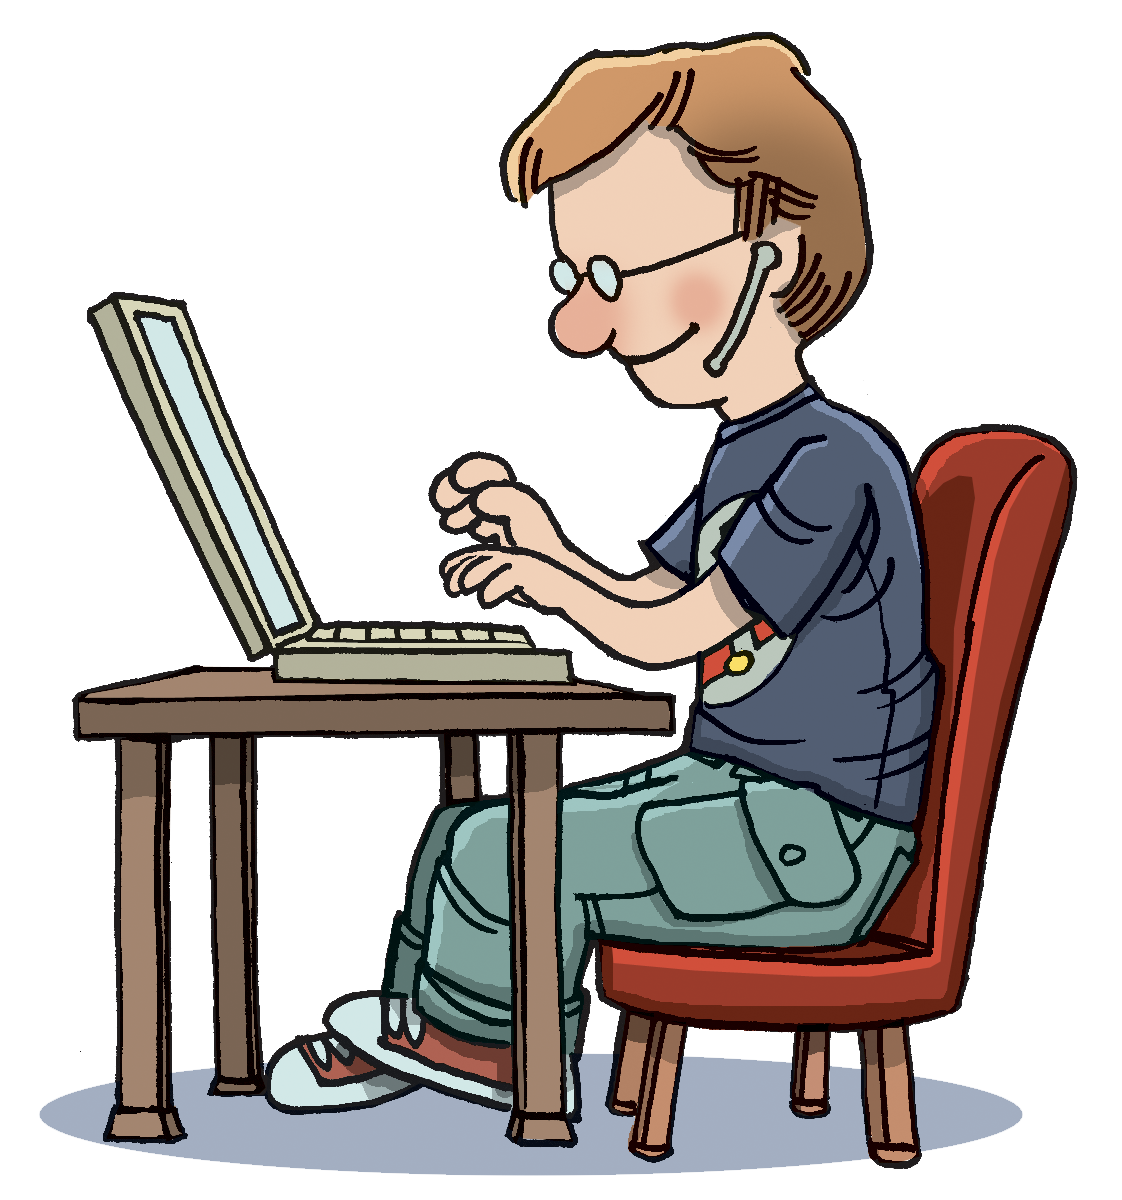 Free Typing Practice Cliparts, Download Free Clip Art, Free.